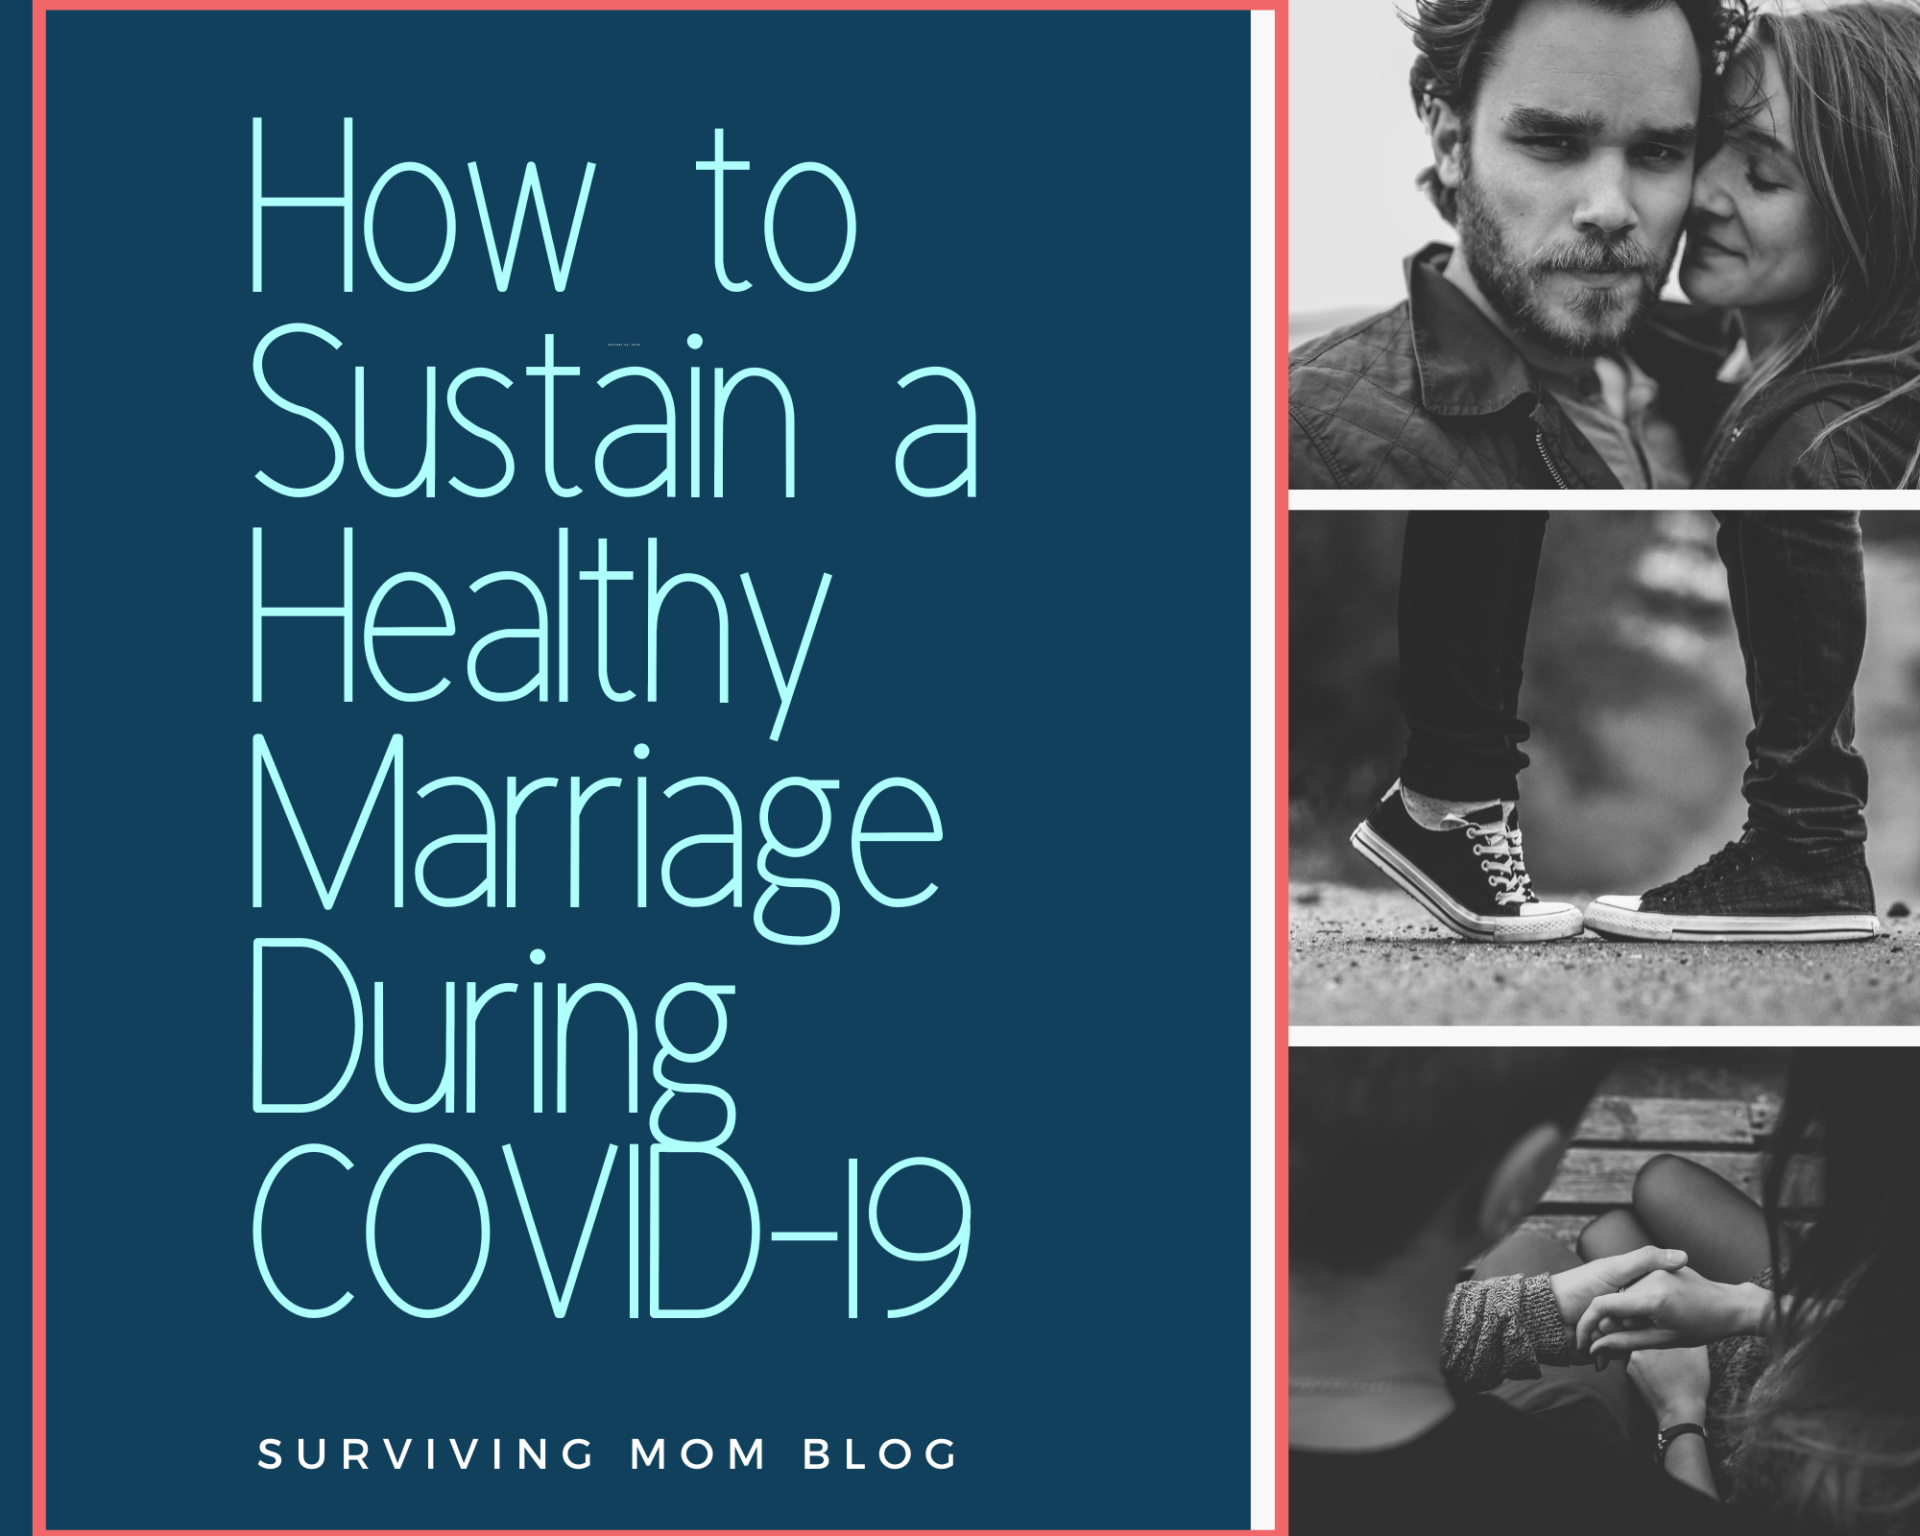 sustain a healthy marriage